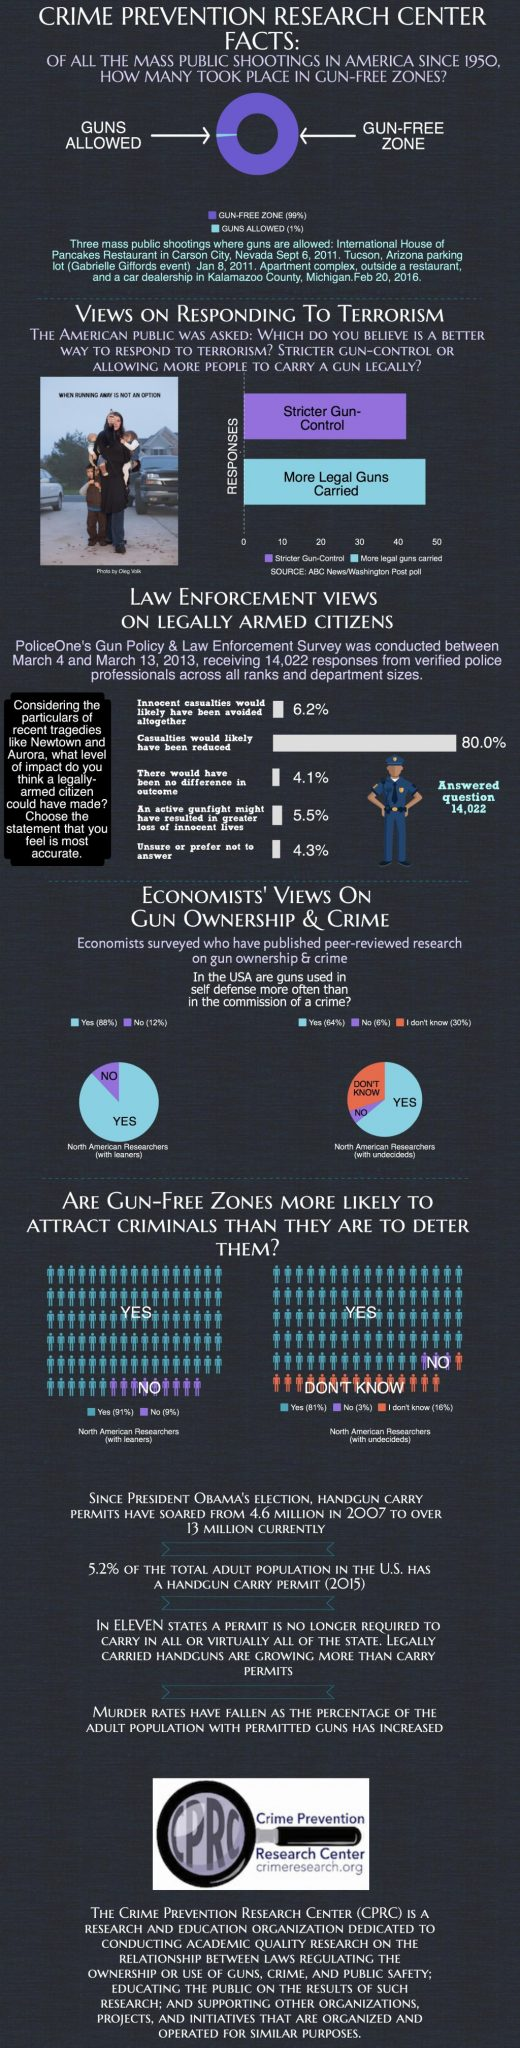 CPRC infographic on concealed carry (CCW)